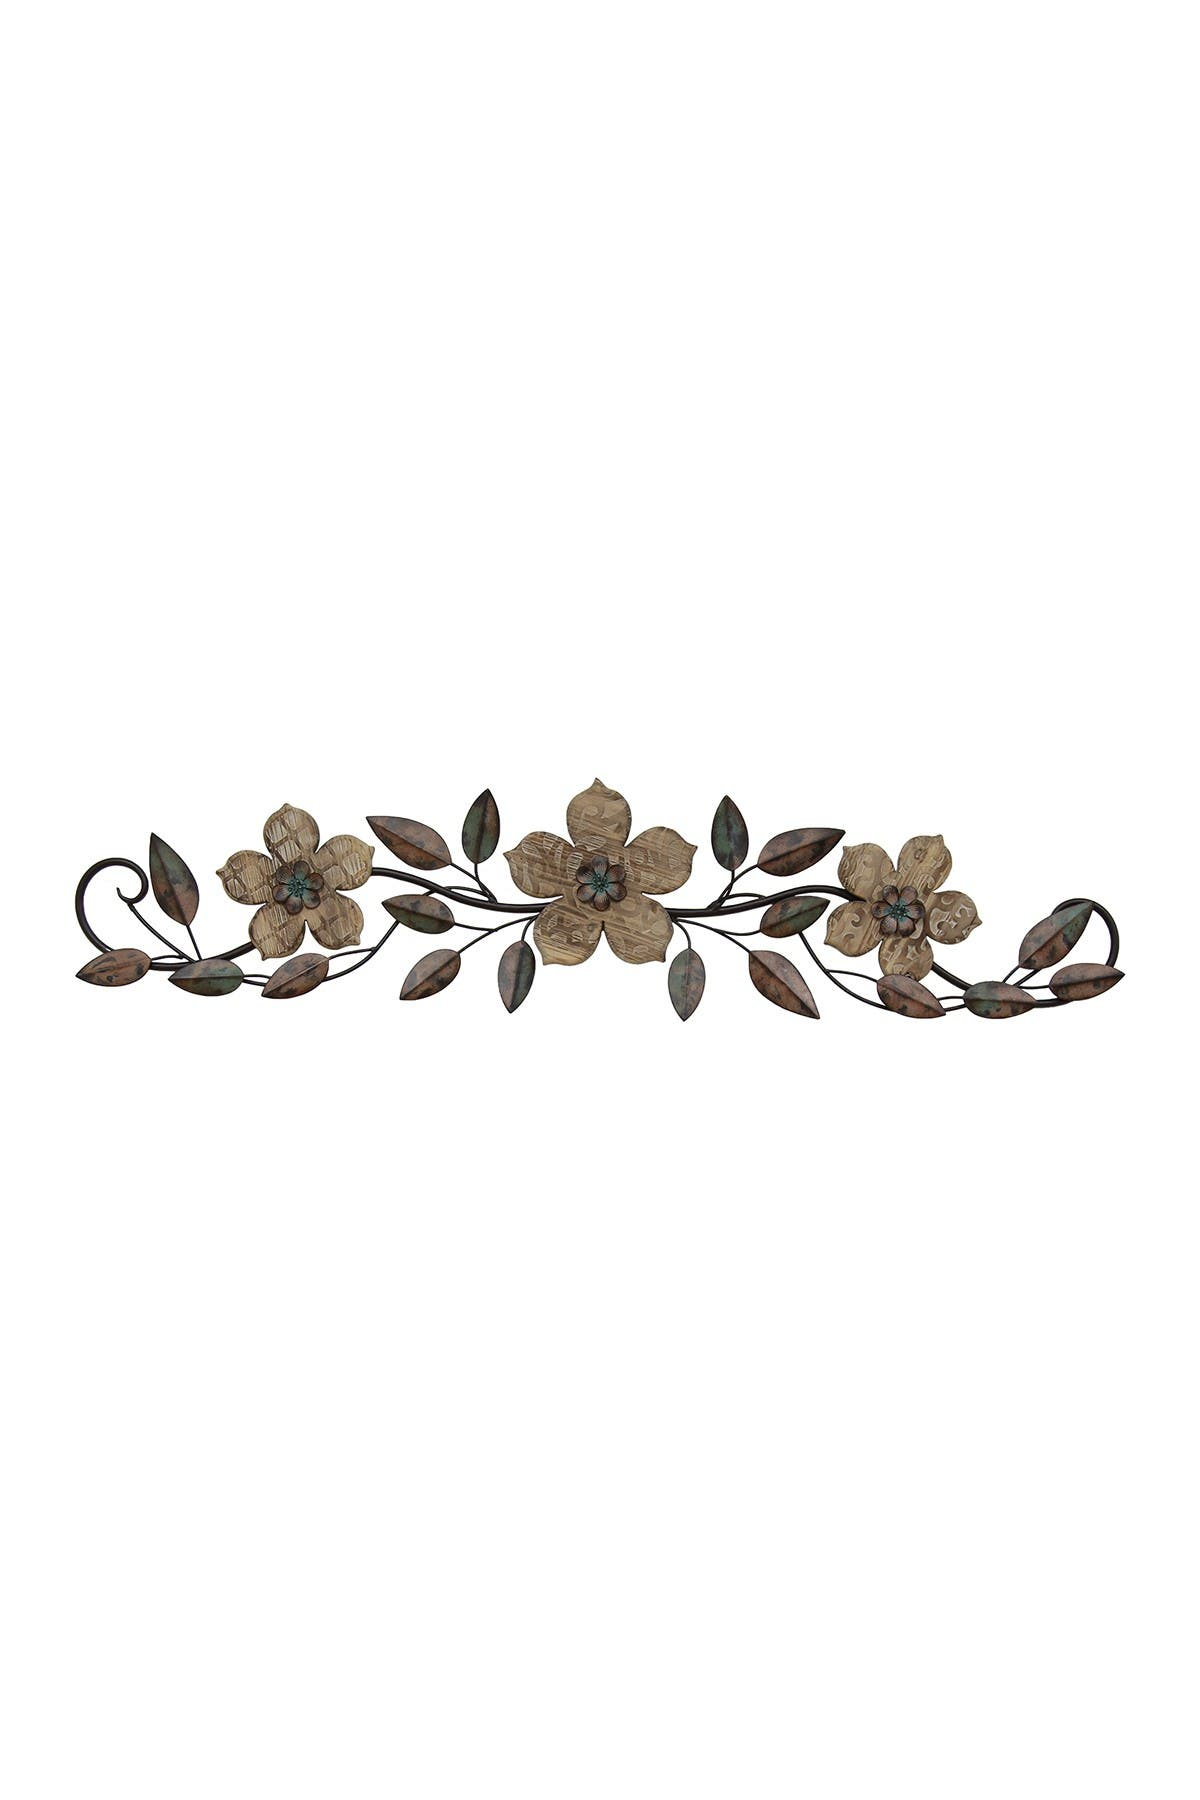 Image of Stratton Home Floral Patterned Wood Over the Door Multicolor Wall Decor